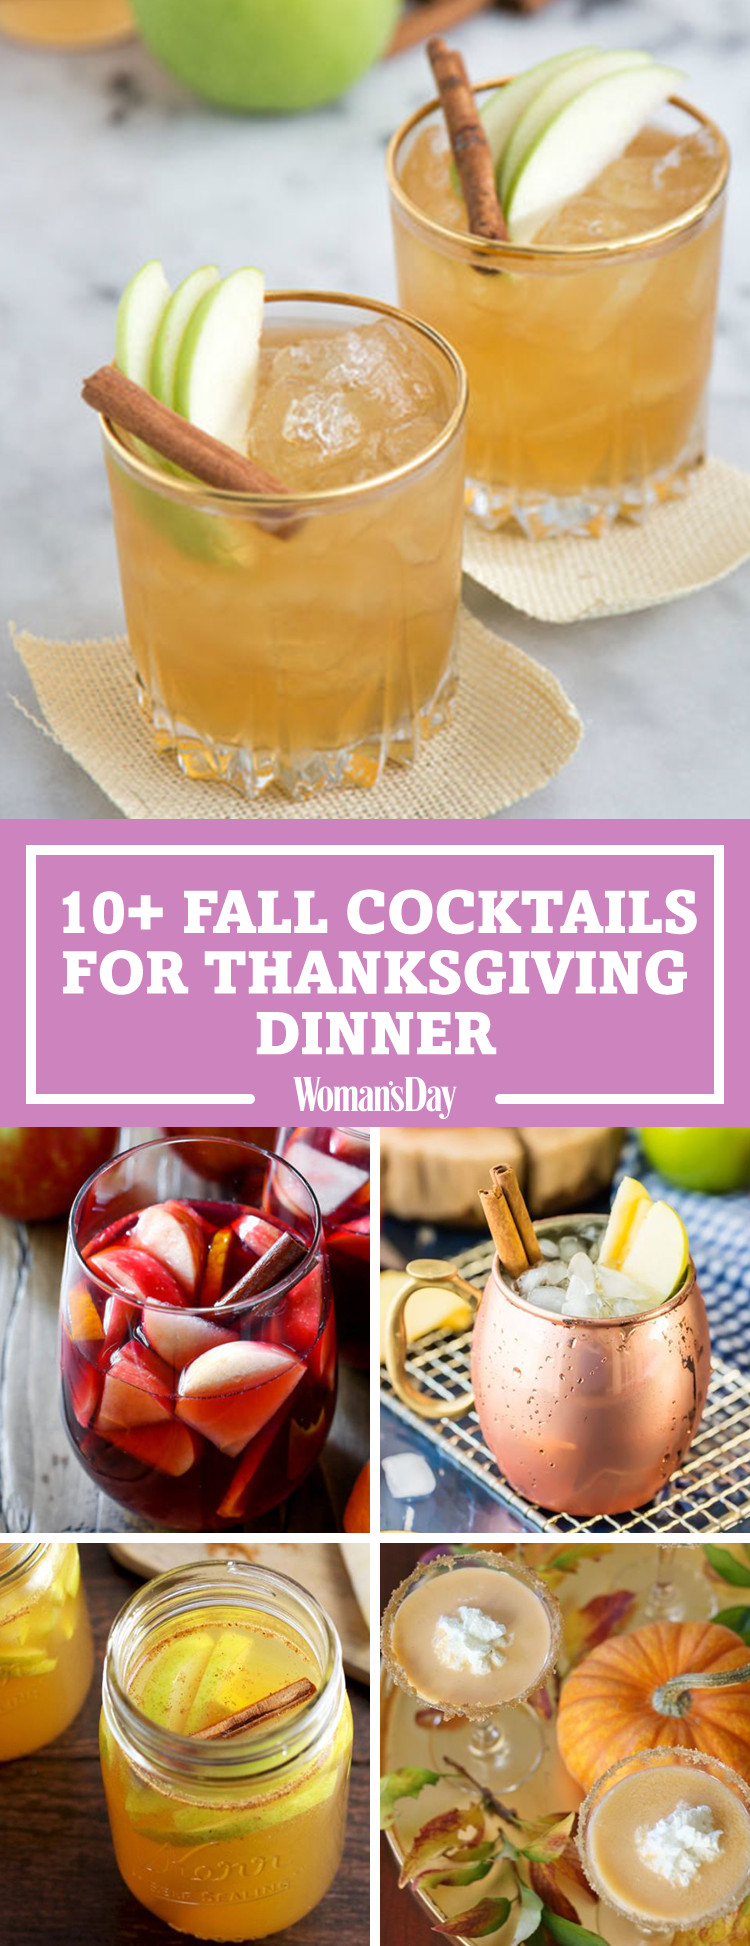 Thanksgiving Vodka Drinks  14 Best Fall Cocktails for Thanksgiving Recipes for Easy